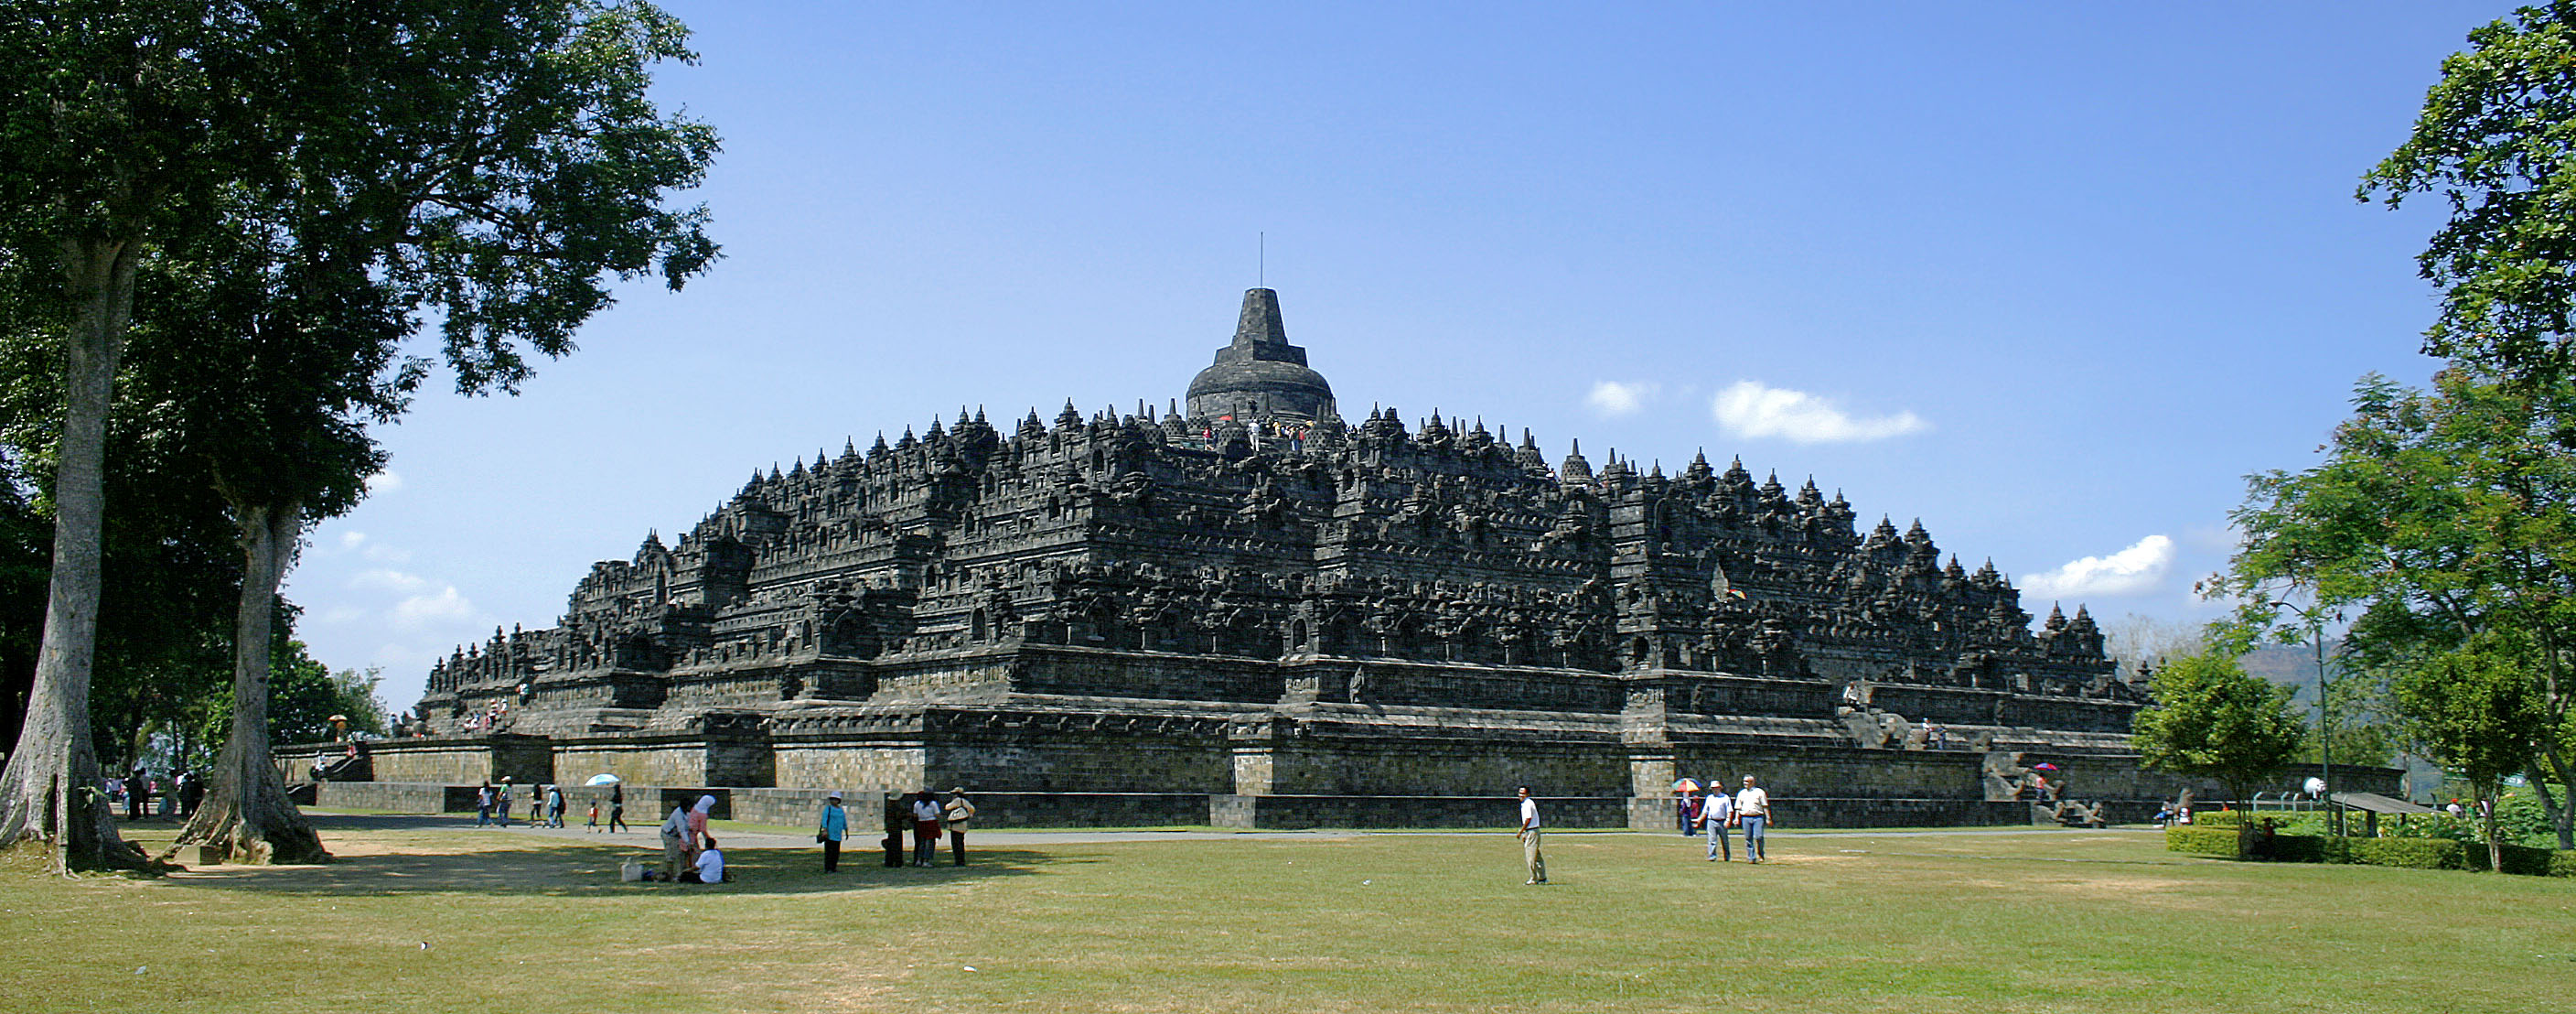 https://i2.wp.com/upload.wikimedia.org/wikipedia/commons/8/8c/Borobudur-Nothwest-view.jpg